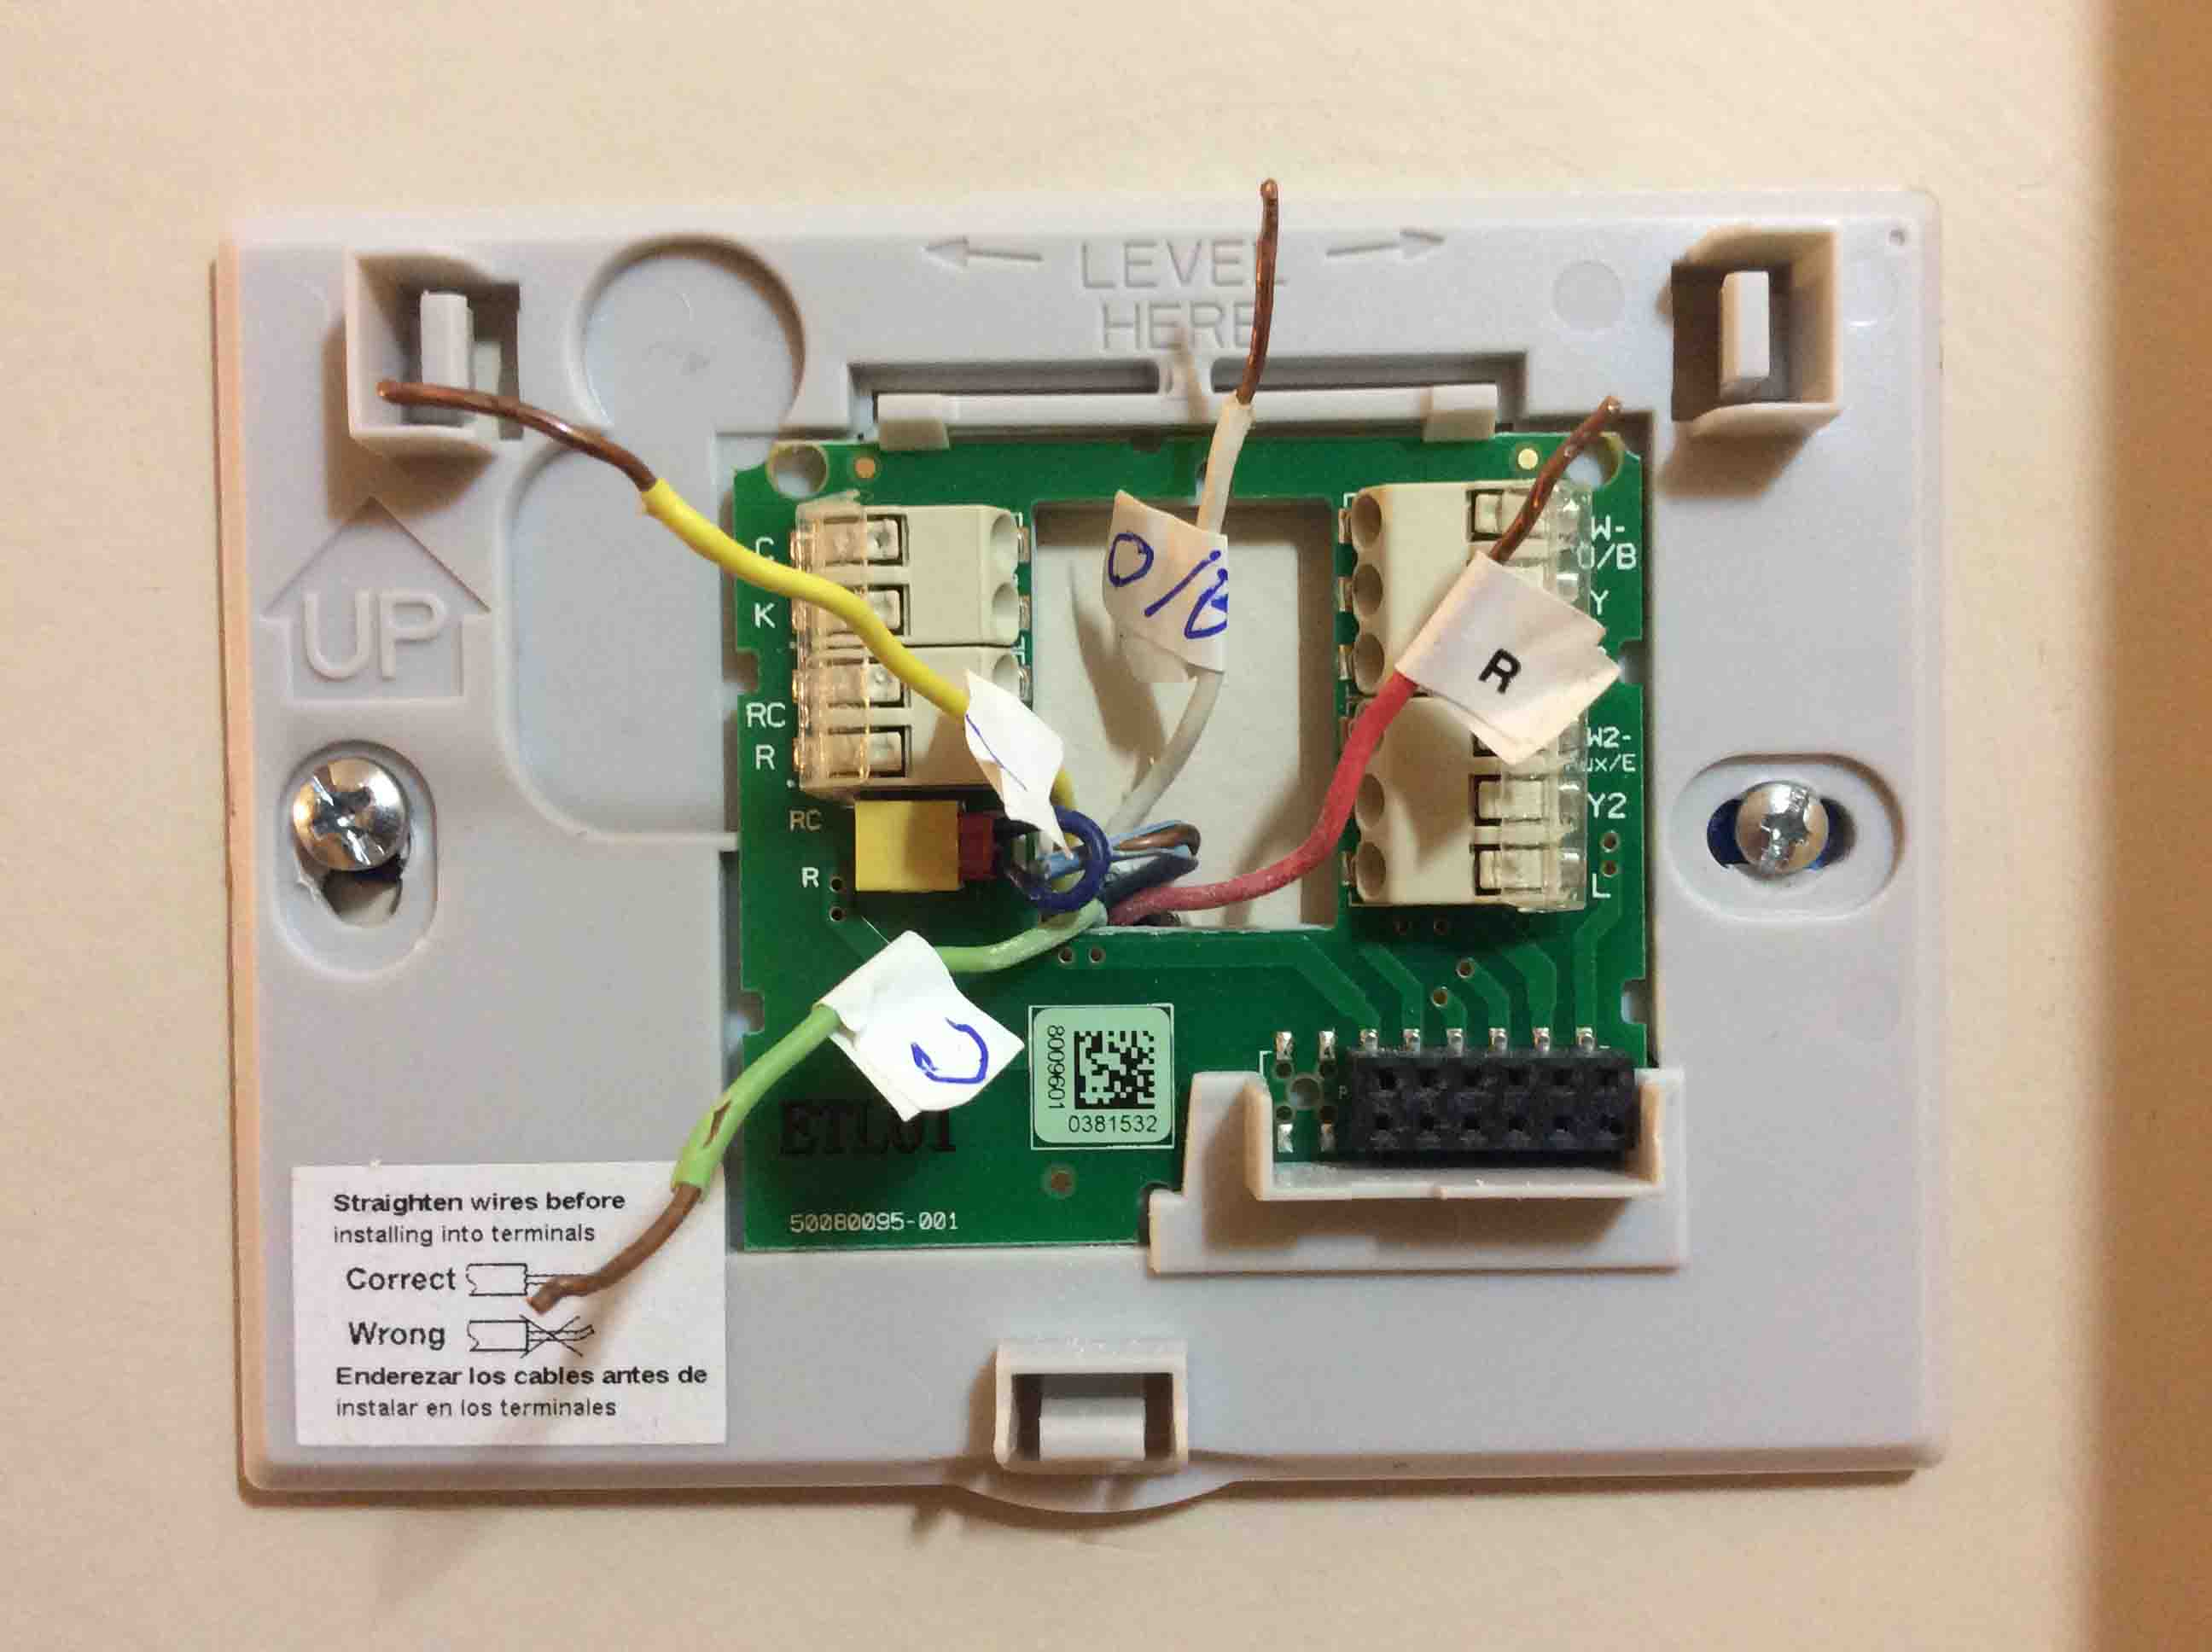 HoneywellSmartThermostatRTH9580WFWallPlateMounted_001 honeywell smart thermostat wiring instructions rth9580wf tom's wiring diagram for honeywell rth6580wf at gsmx.co